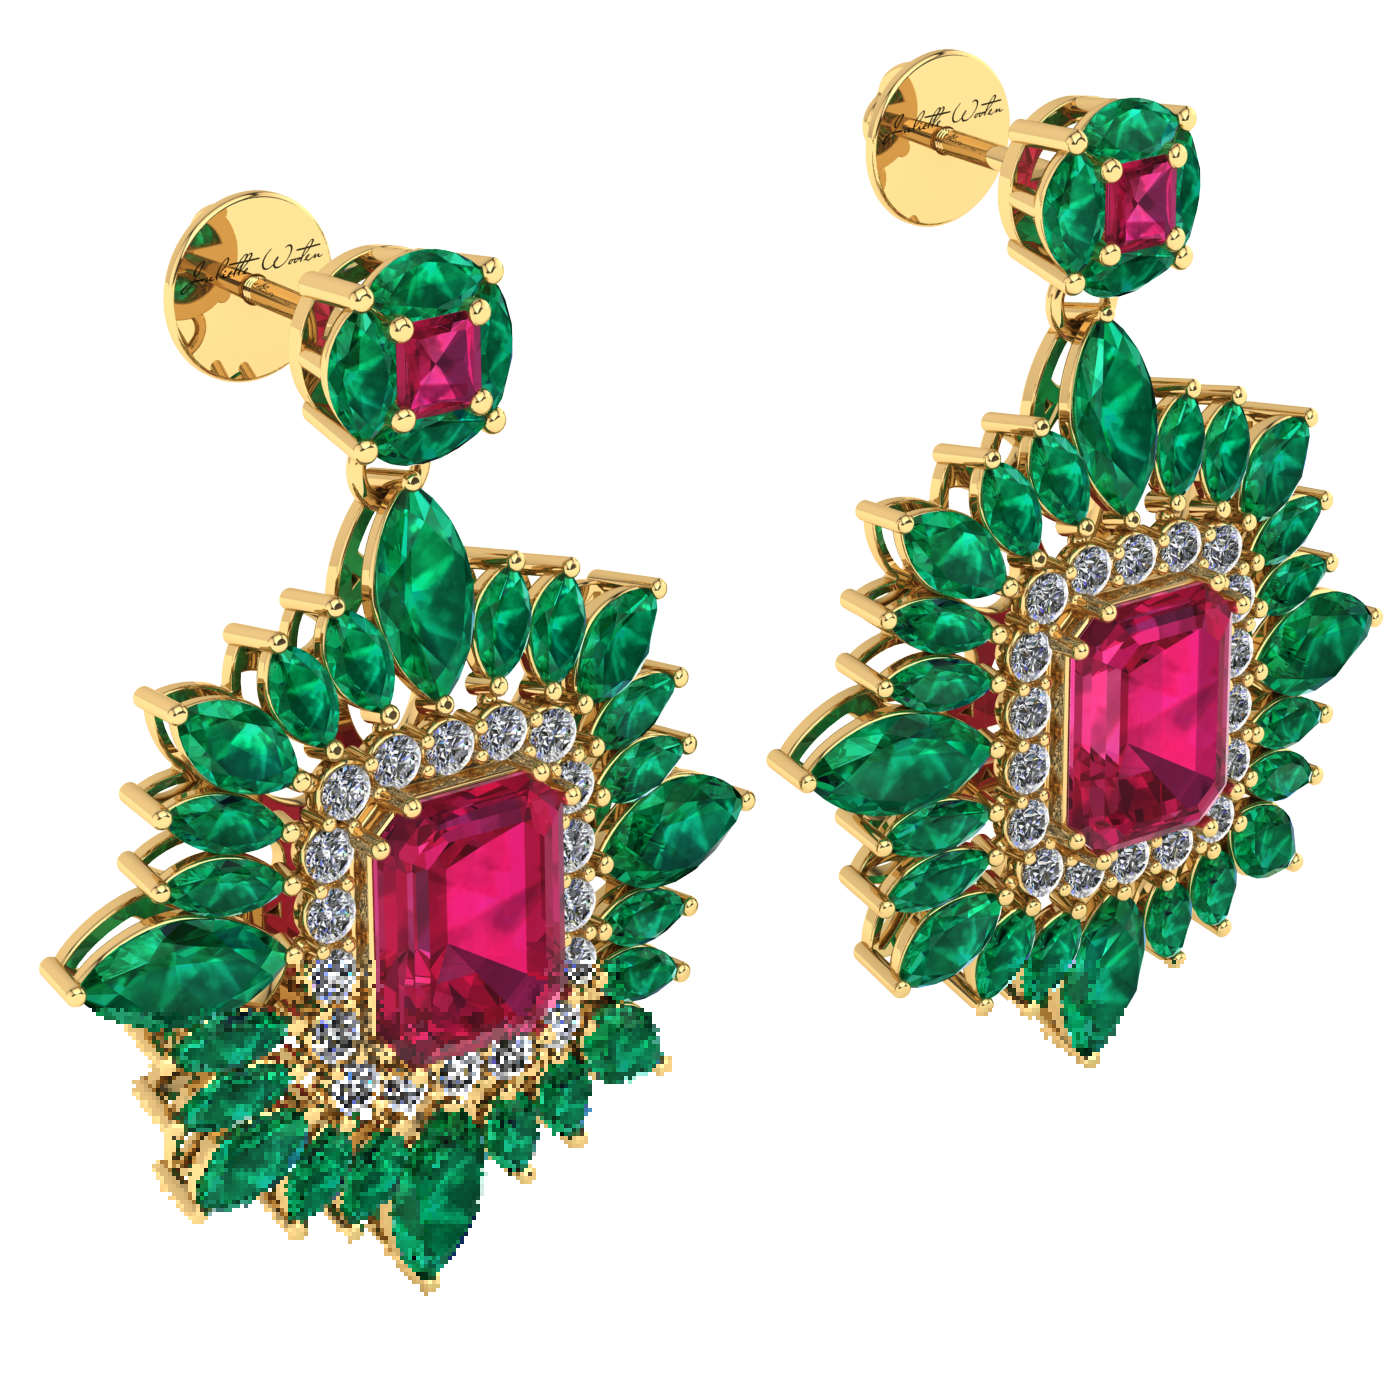 ruby burma jewellery and colored untreated jewelry estate gemstones pearl drop earrings image